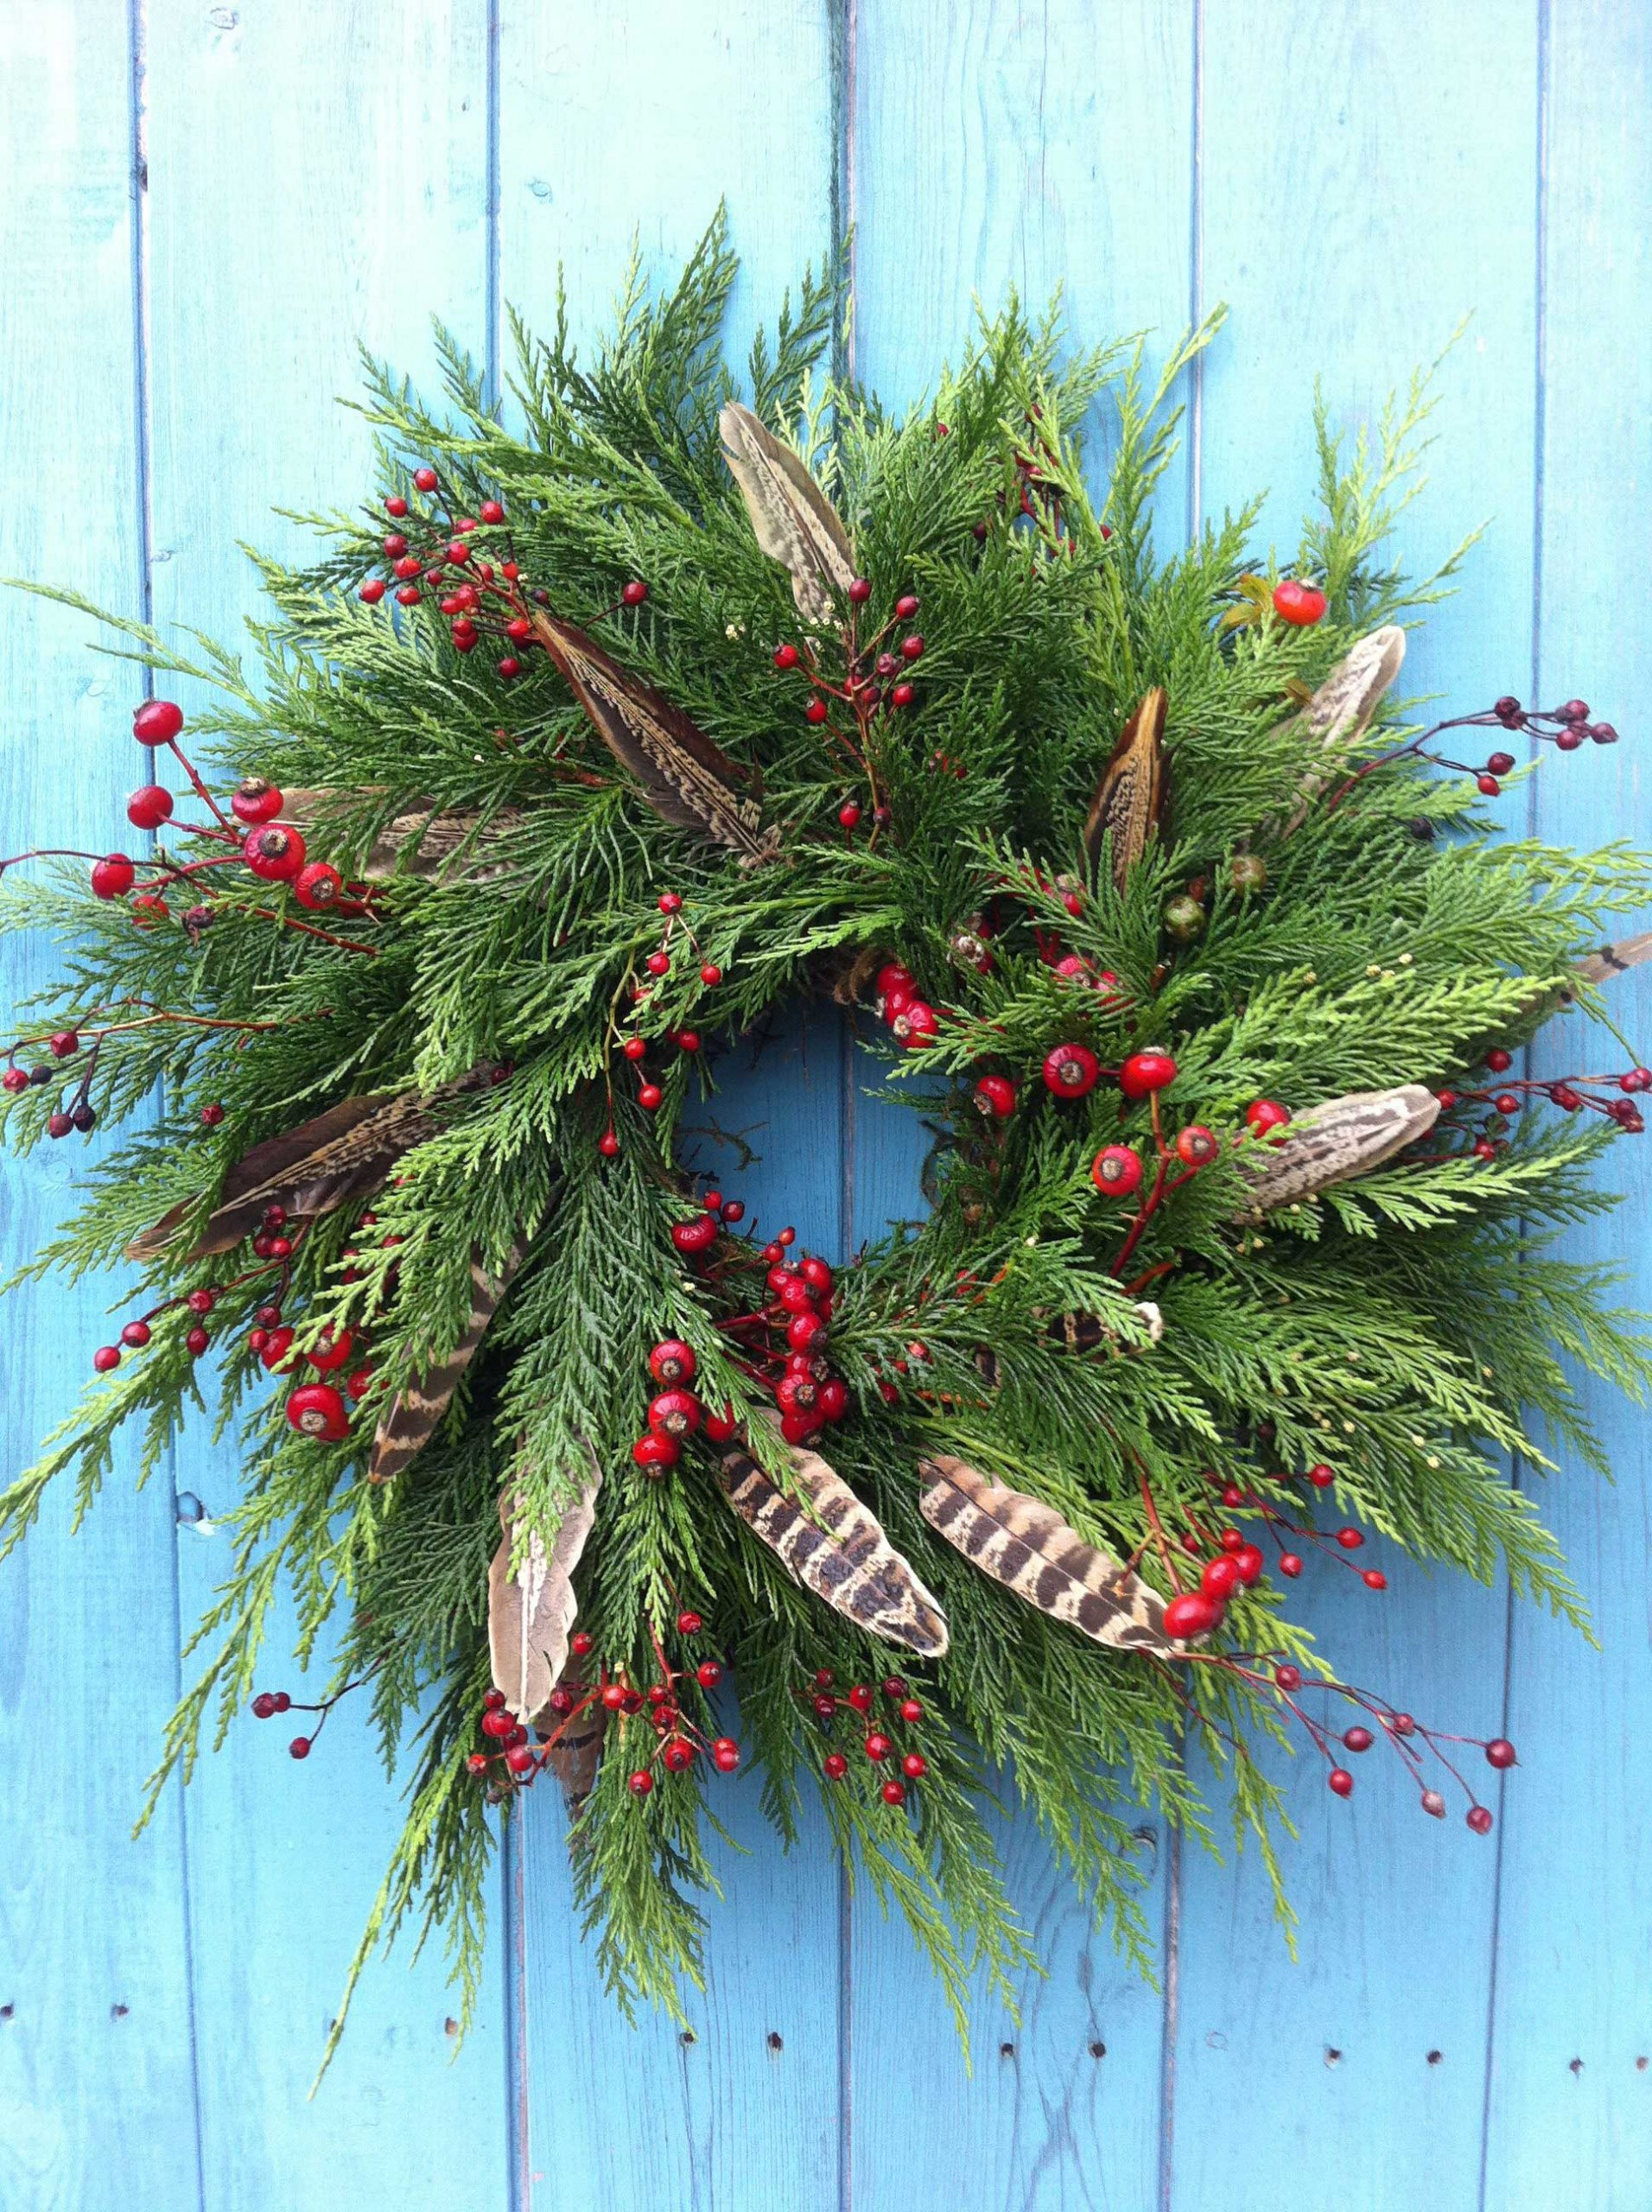 Christmas wreath - berries and feathers, by Zanna from S P I N D L E